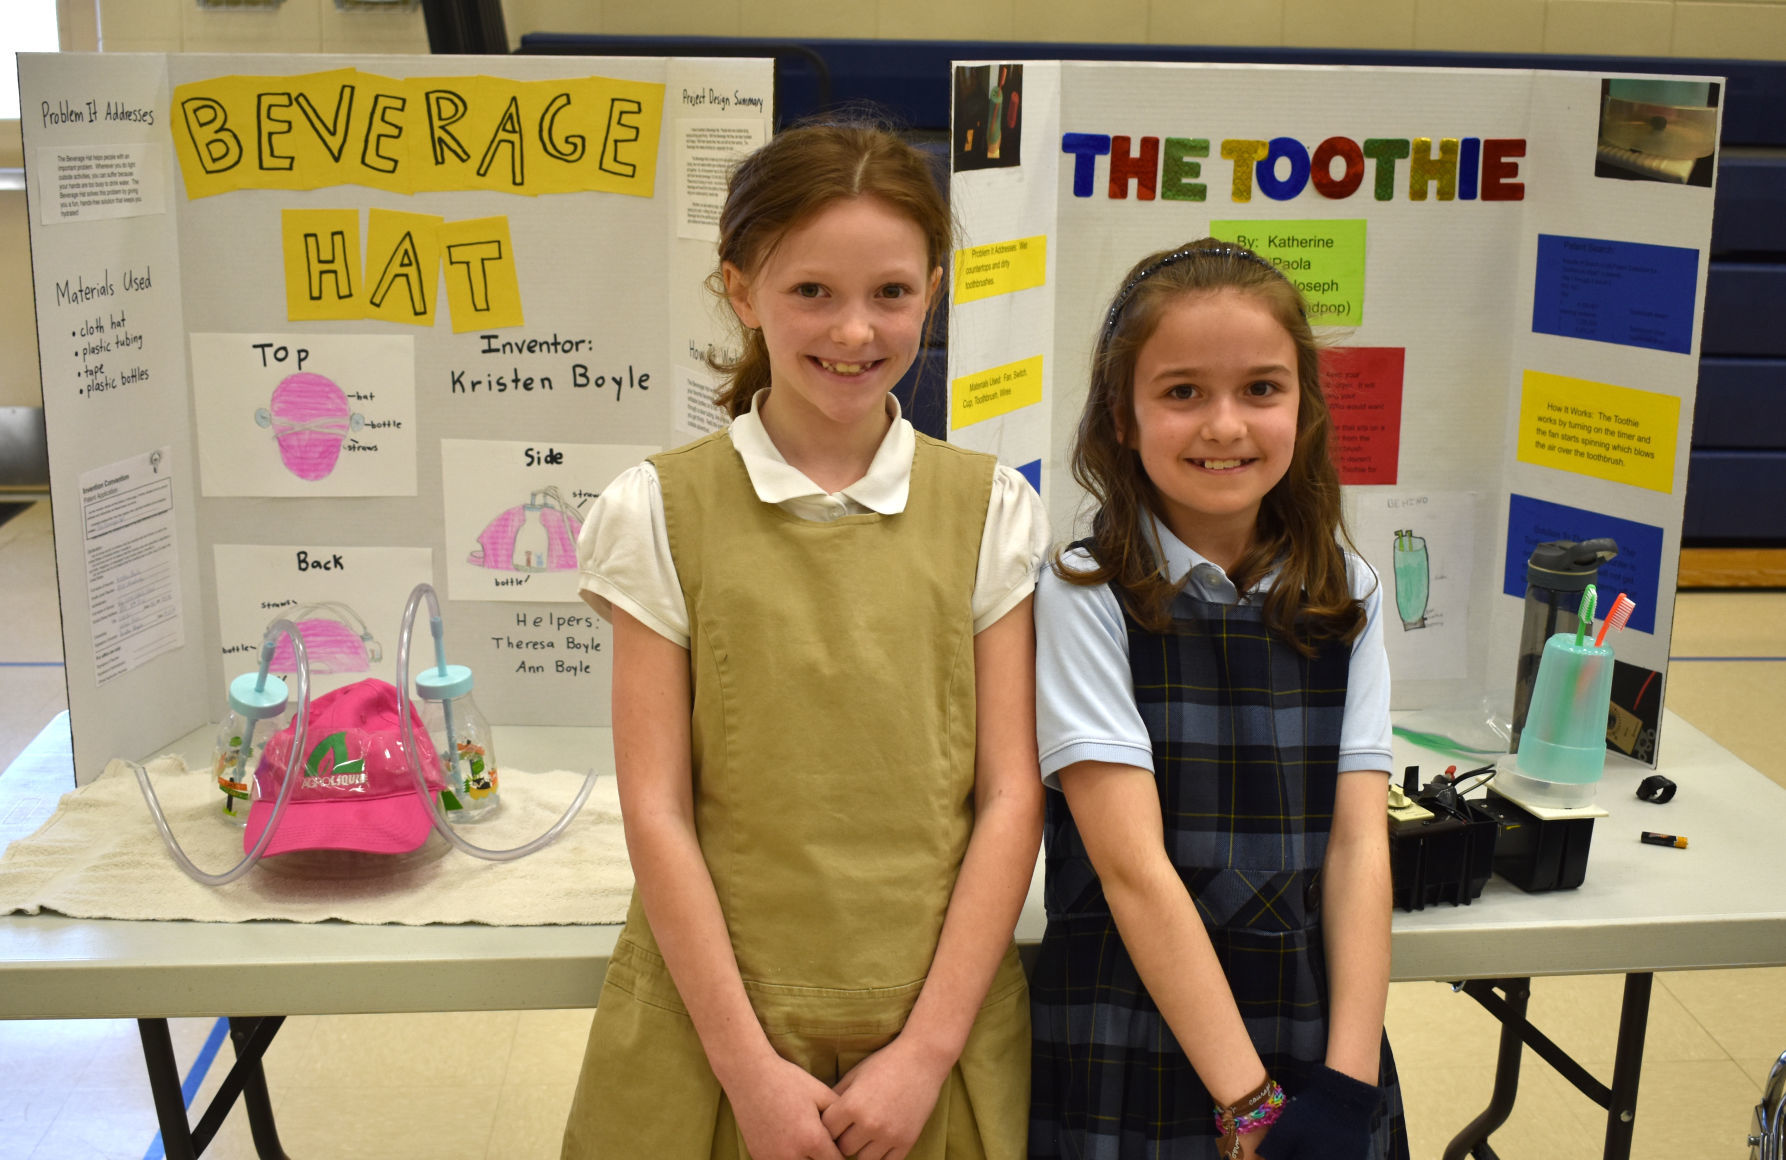 invention convention ideas - Parfu kaptanband co